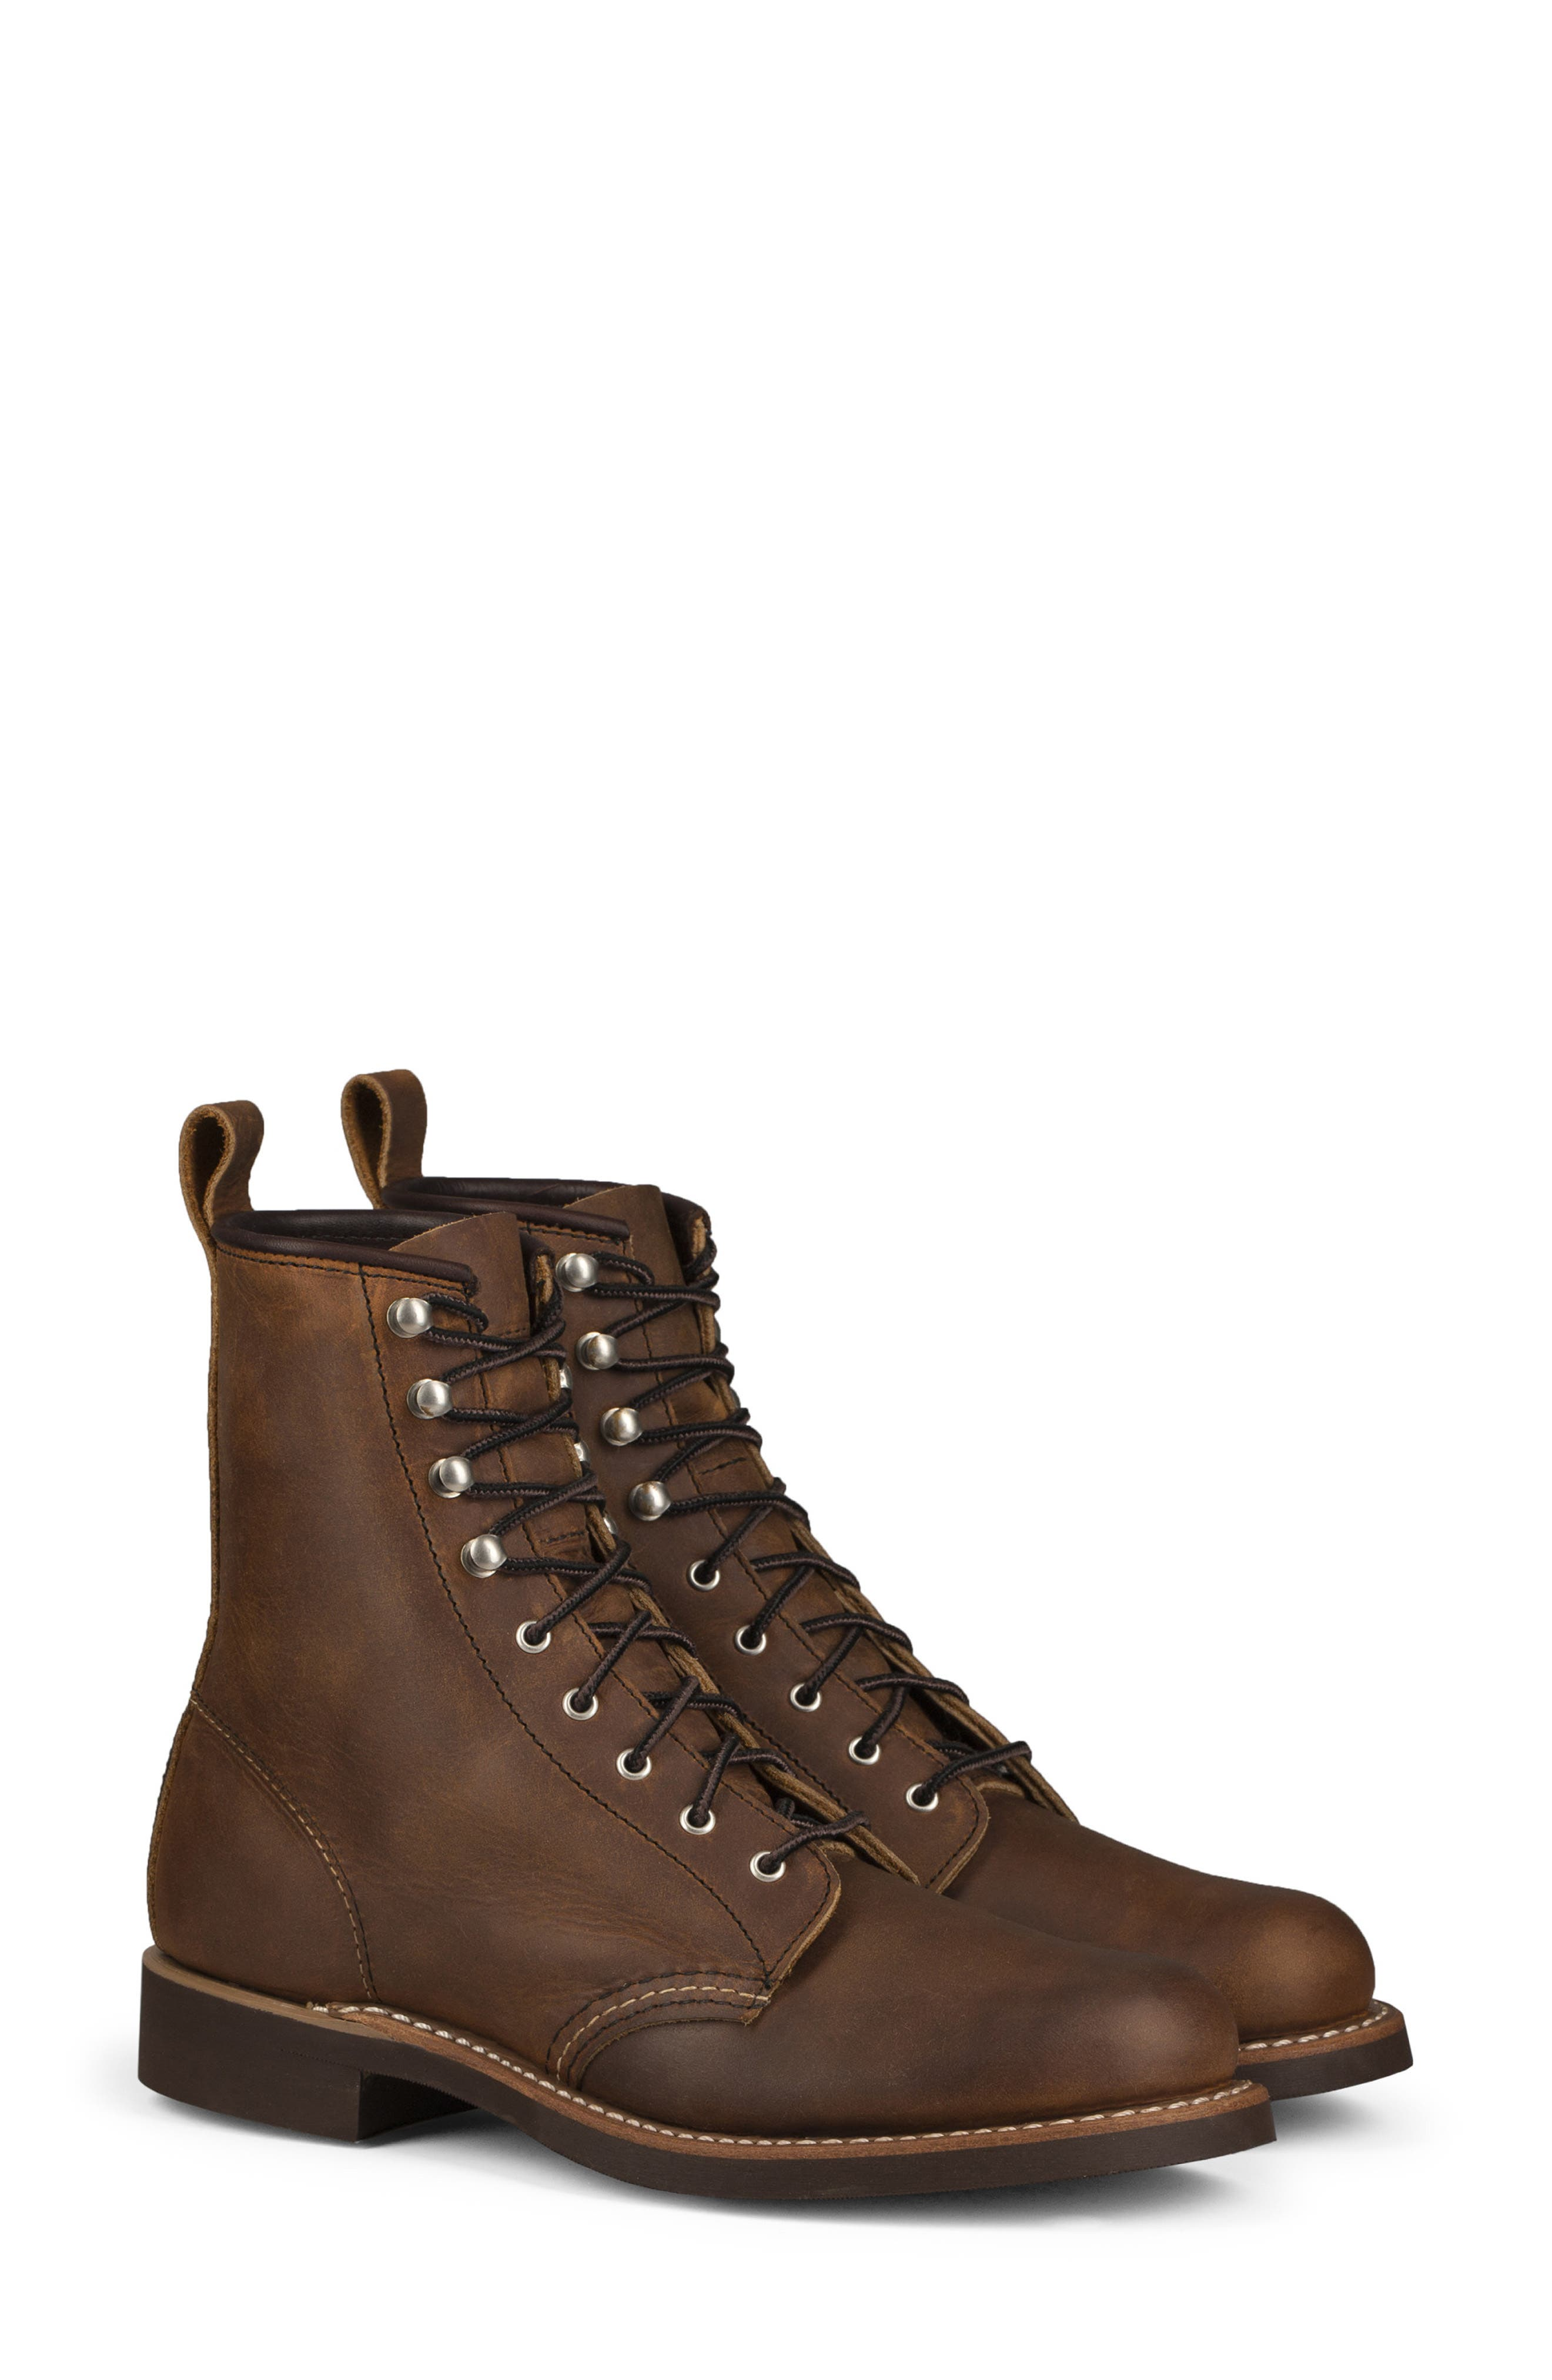 RED WING Silversmith Boot in Copper Rough Tough Leather